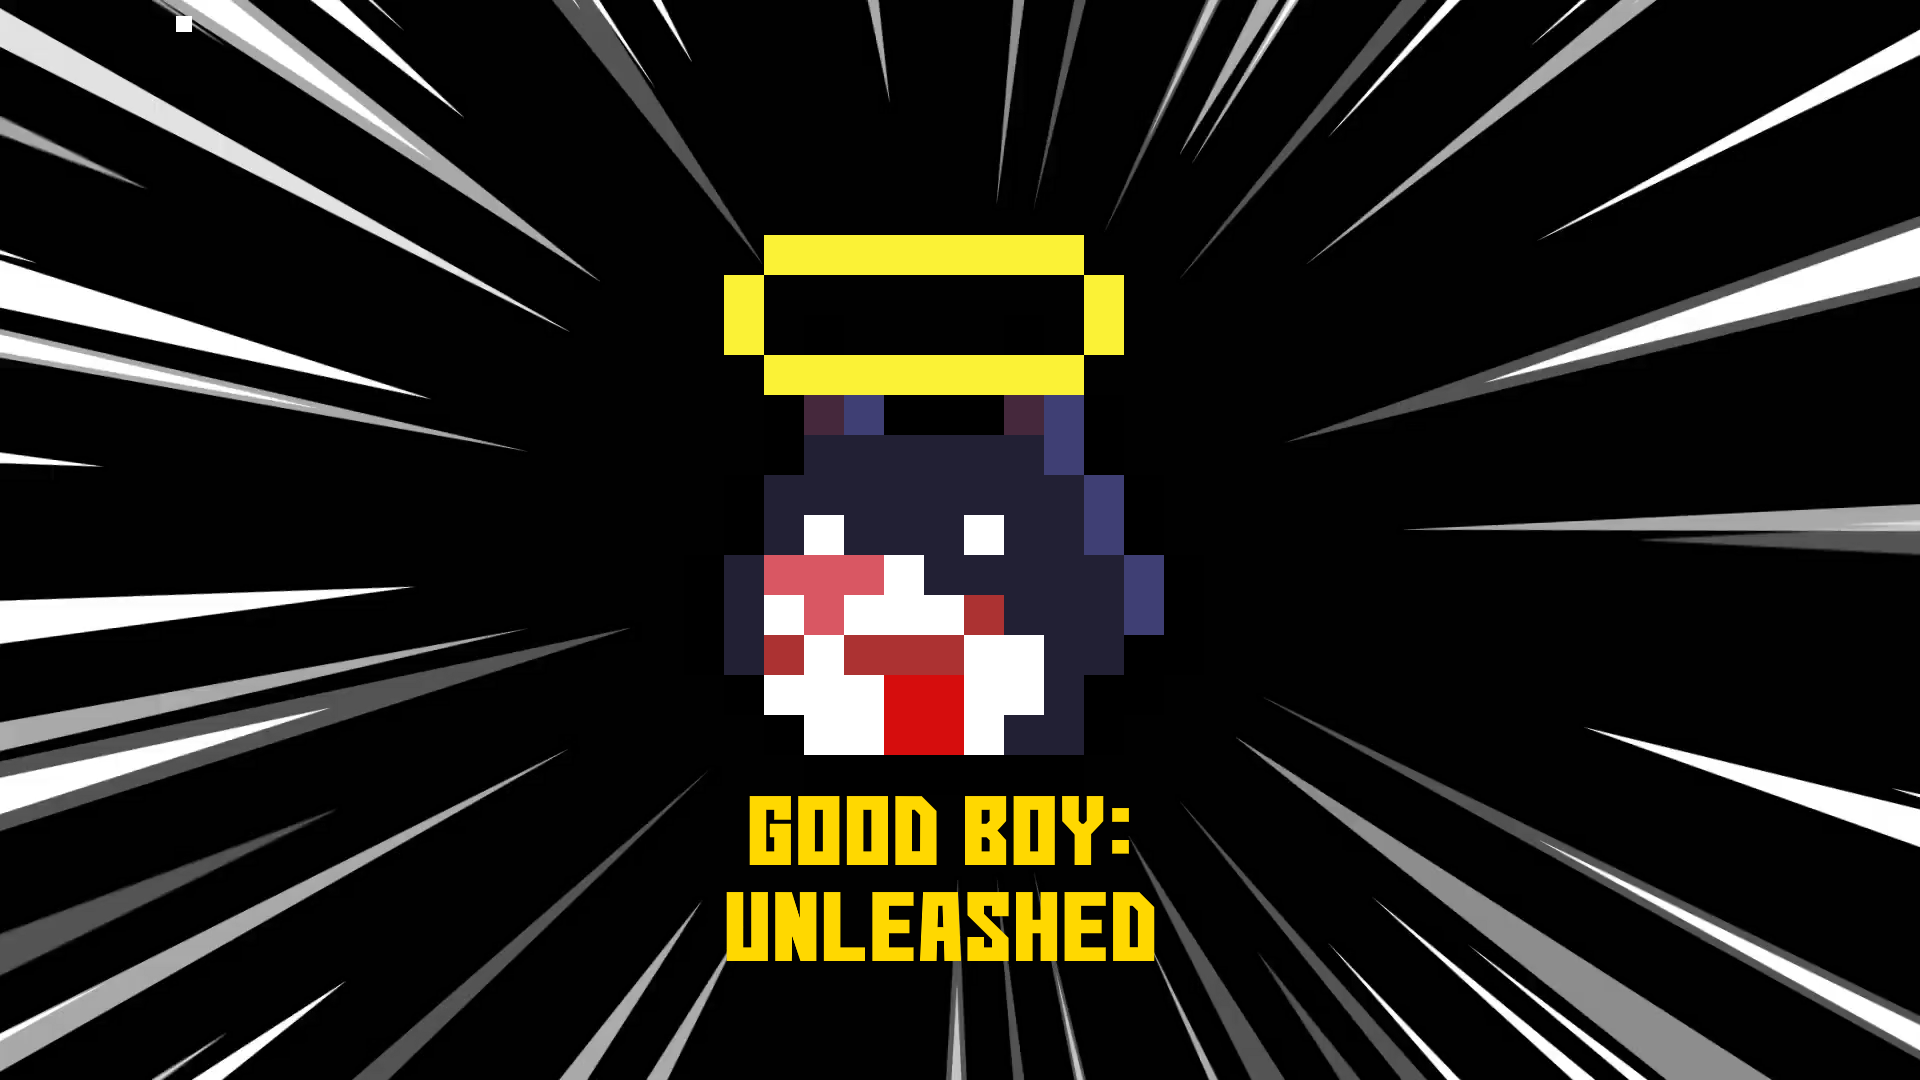 Good Boy: Unleashed by Joan Sol ROO, Titwin, Saltadrow for GMTK ...